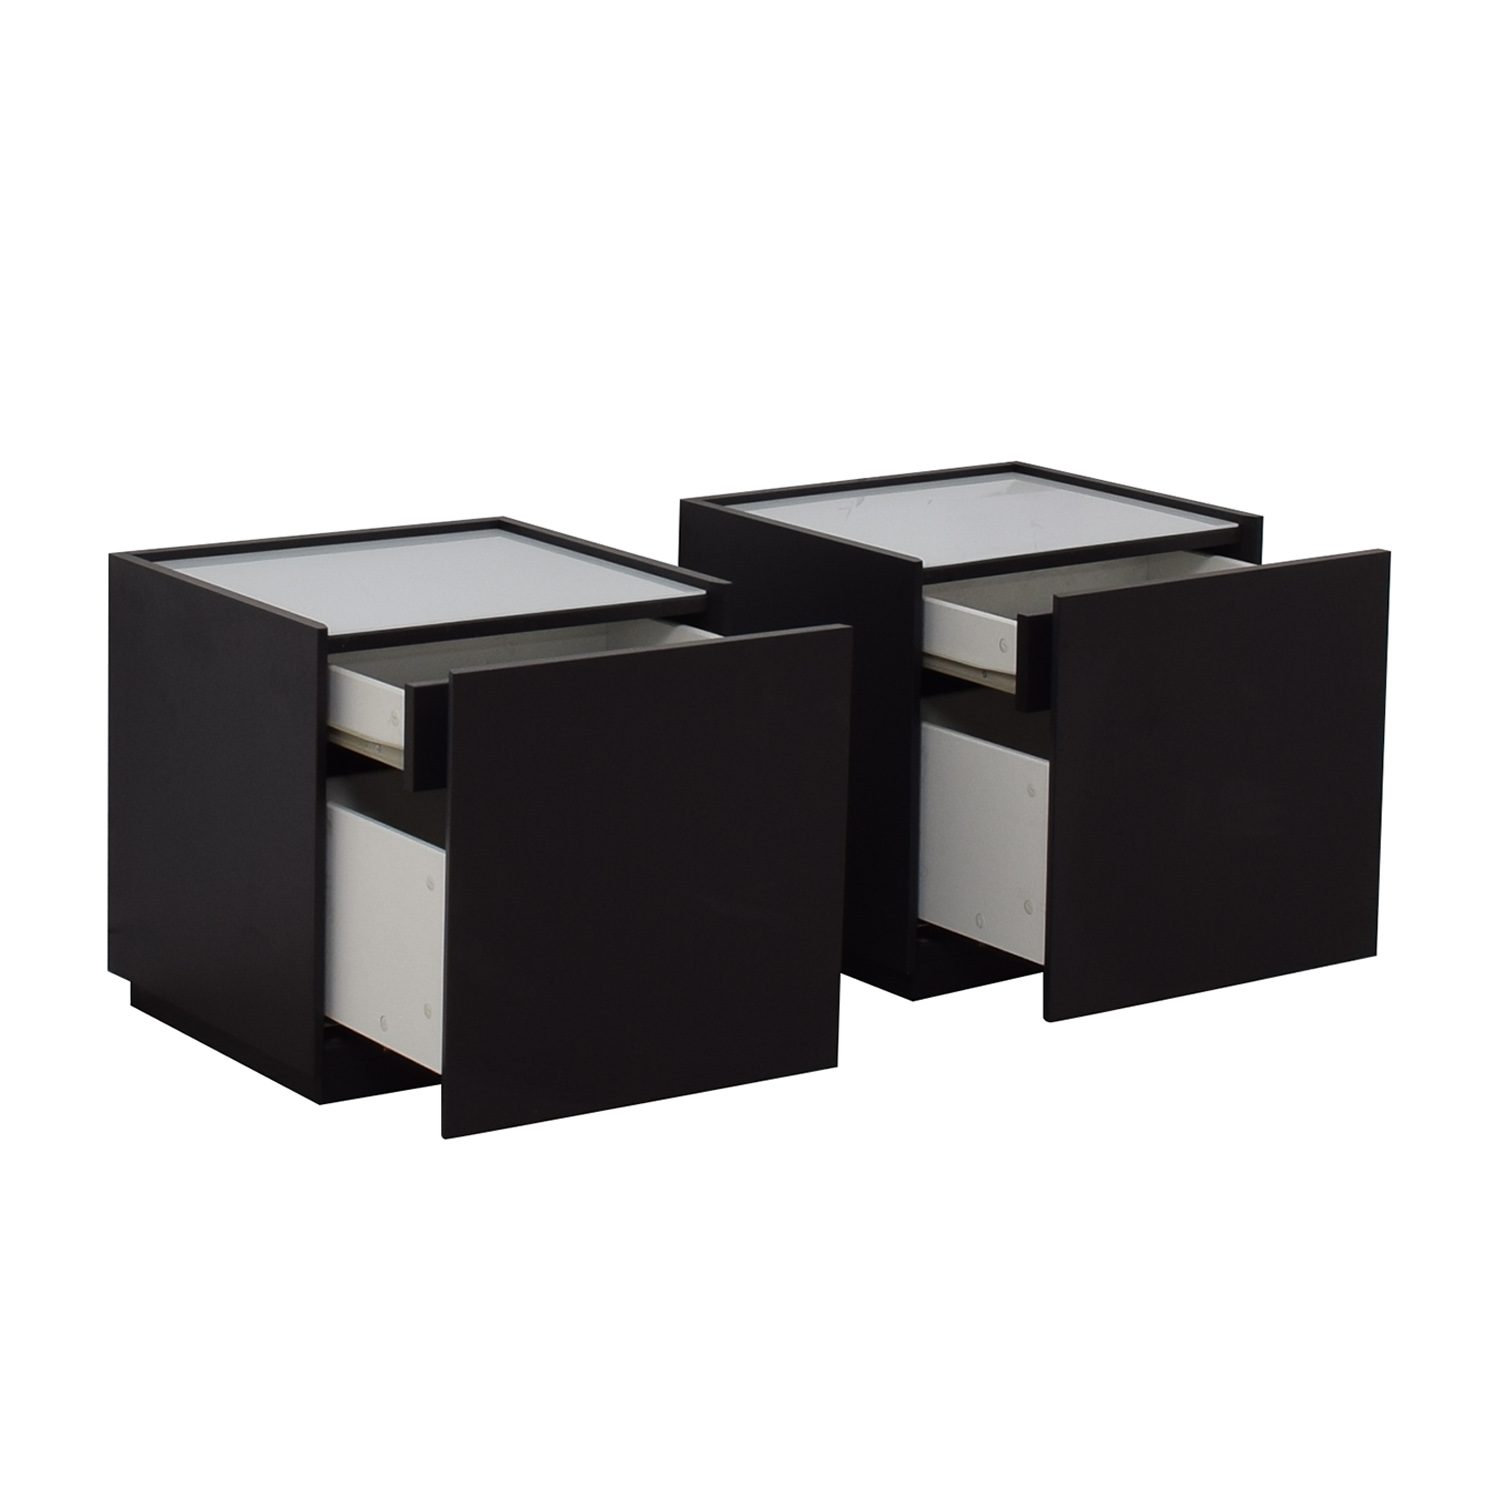 IKEA White and Black Two-Drawer End Tables IKEA